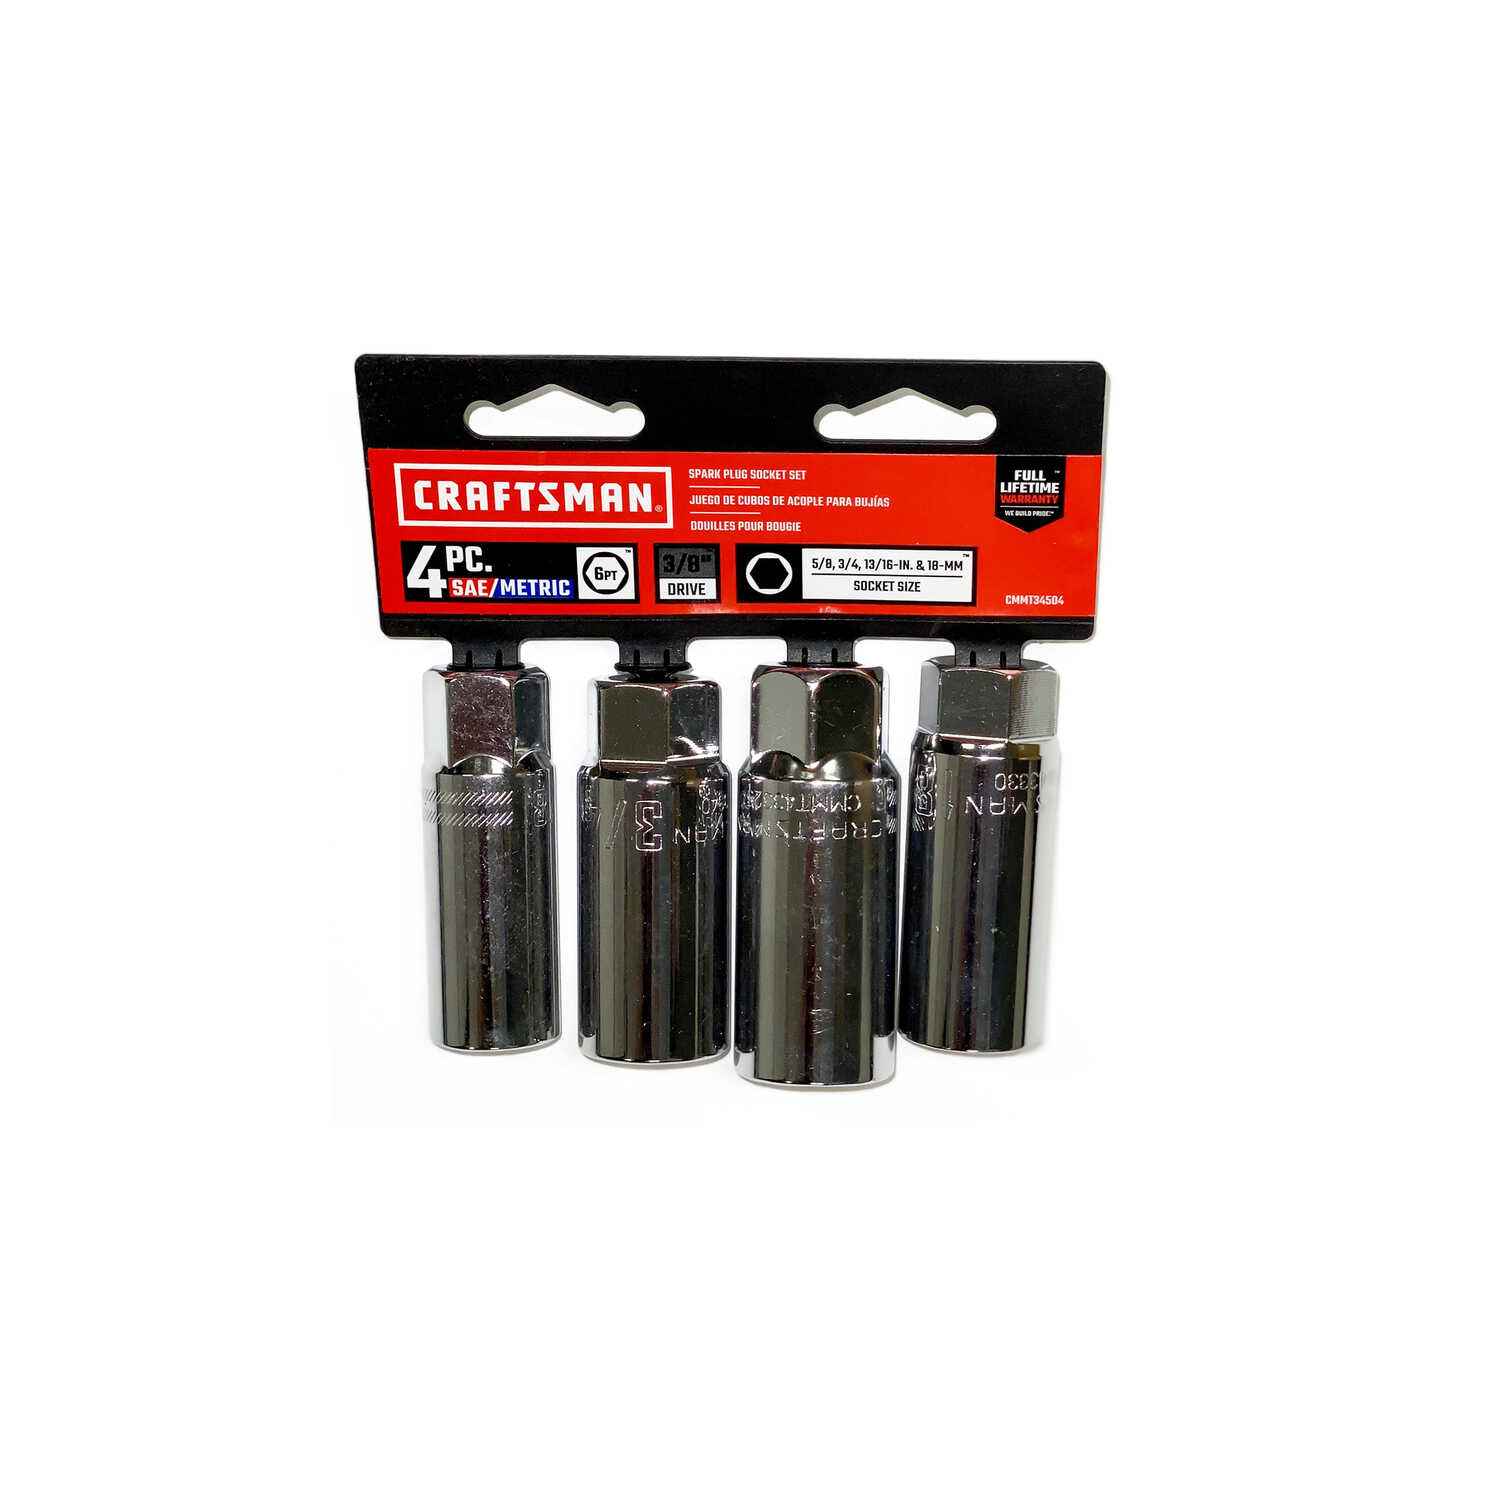 Craftsman  18 mm  x 3/8 in. drive  Metric and SAE  6 Point Spark Plug Socket  4 pc.